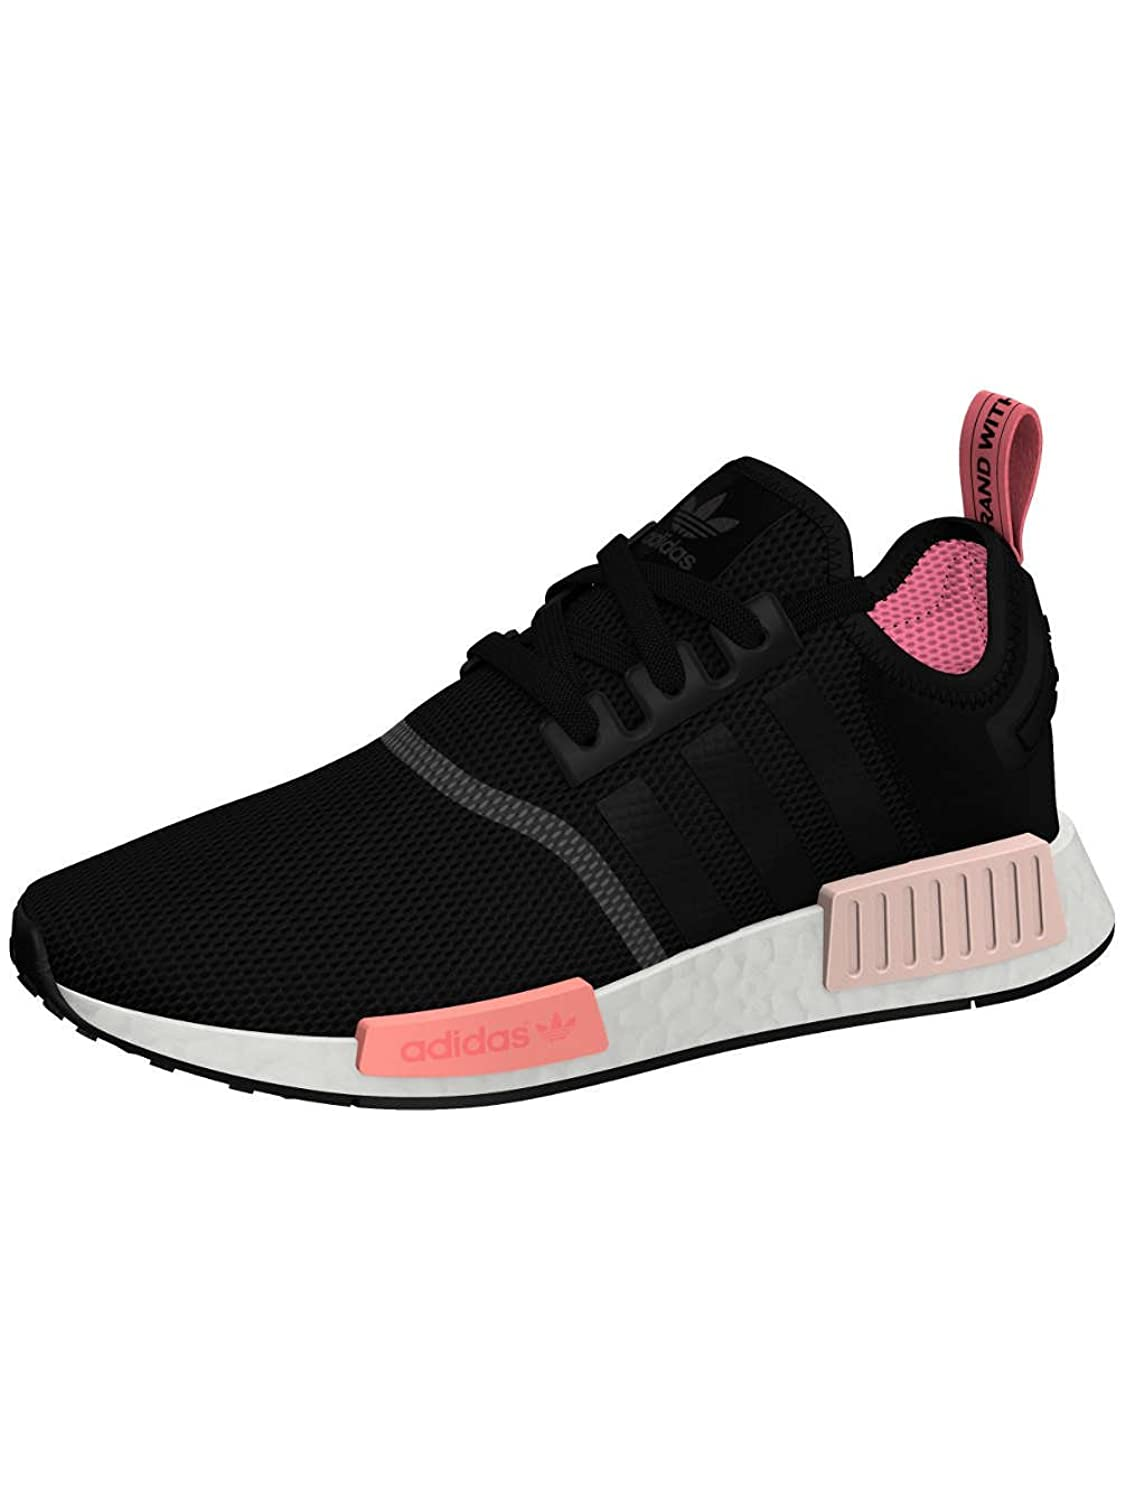 Adidas WOMEN NMD Runner Mesh Black/Peach S75234 Yeezy